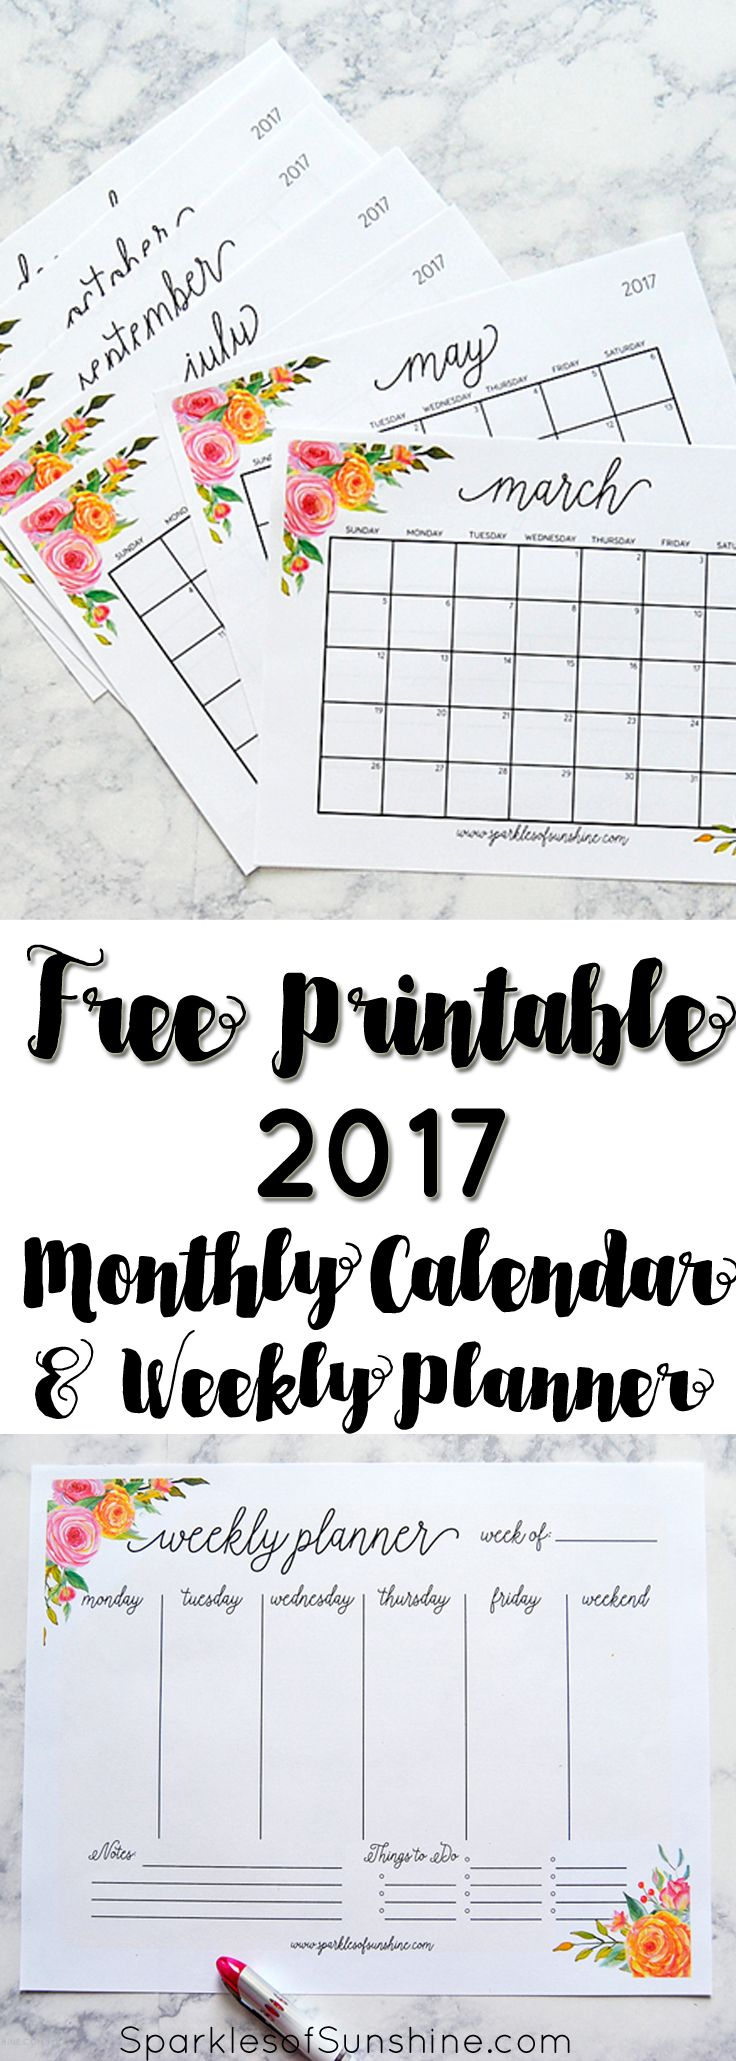 Free Printable 2017 Monthly Calendar and Weekly Planner | Pinterest ...